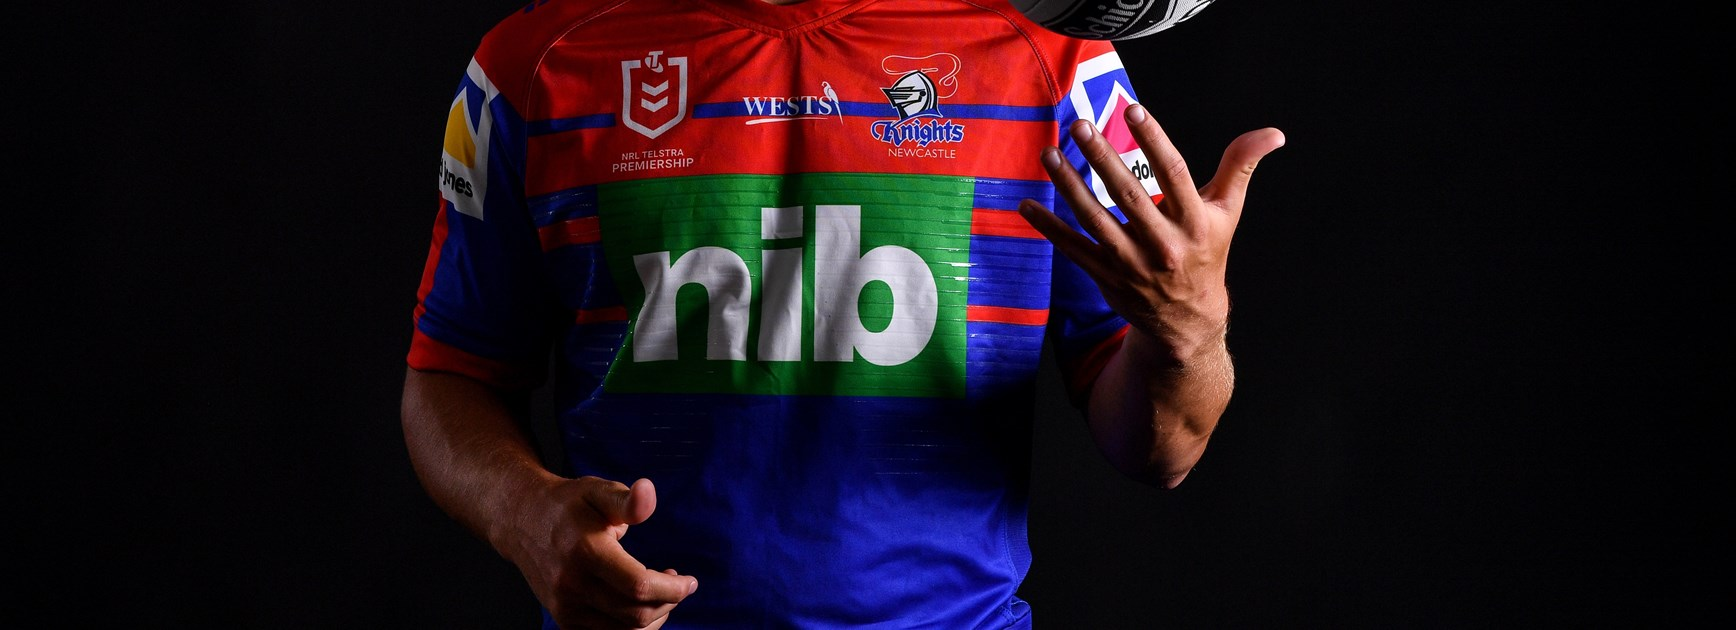 nib extends support of Newcastle Knights